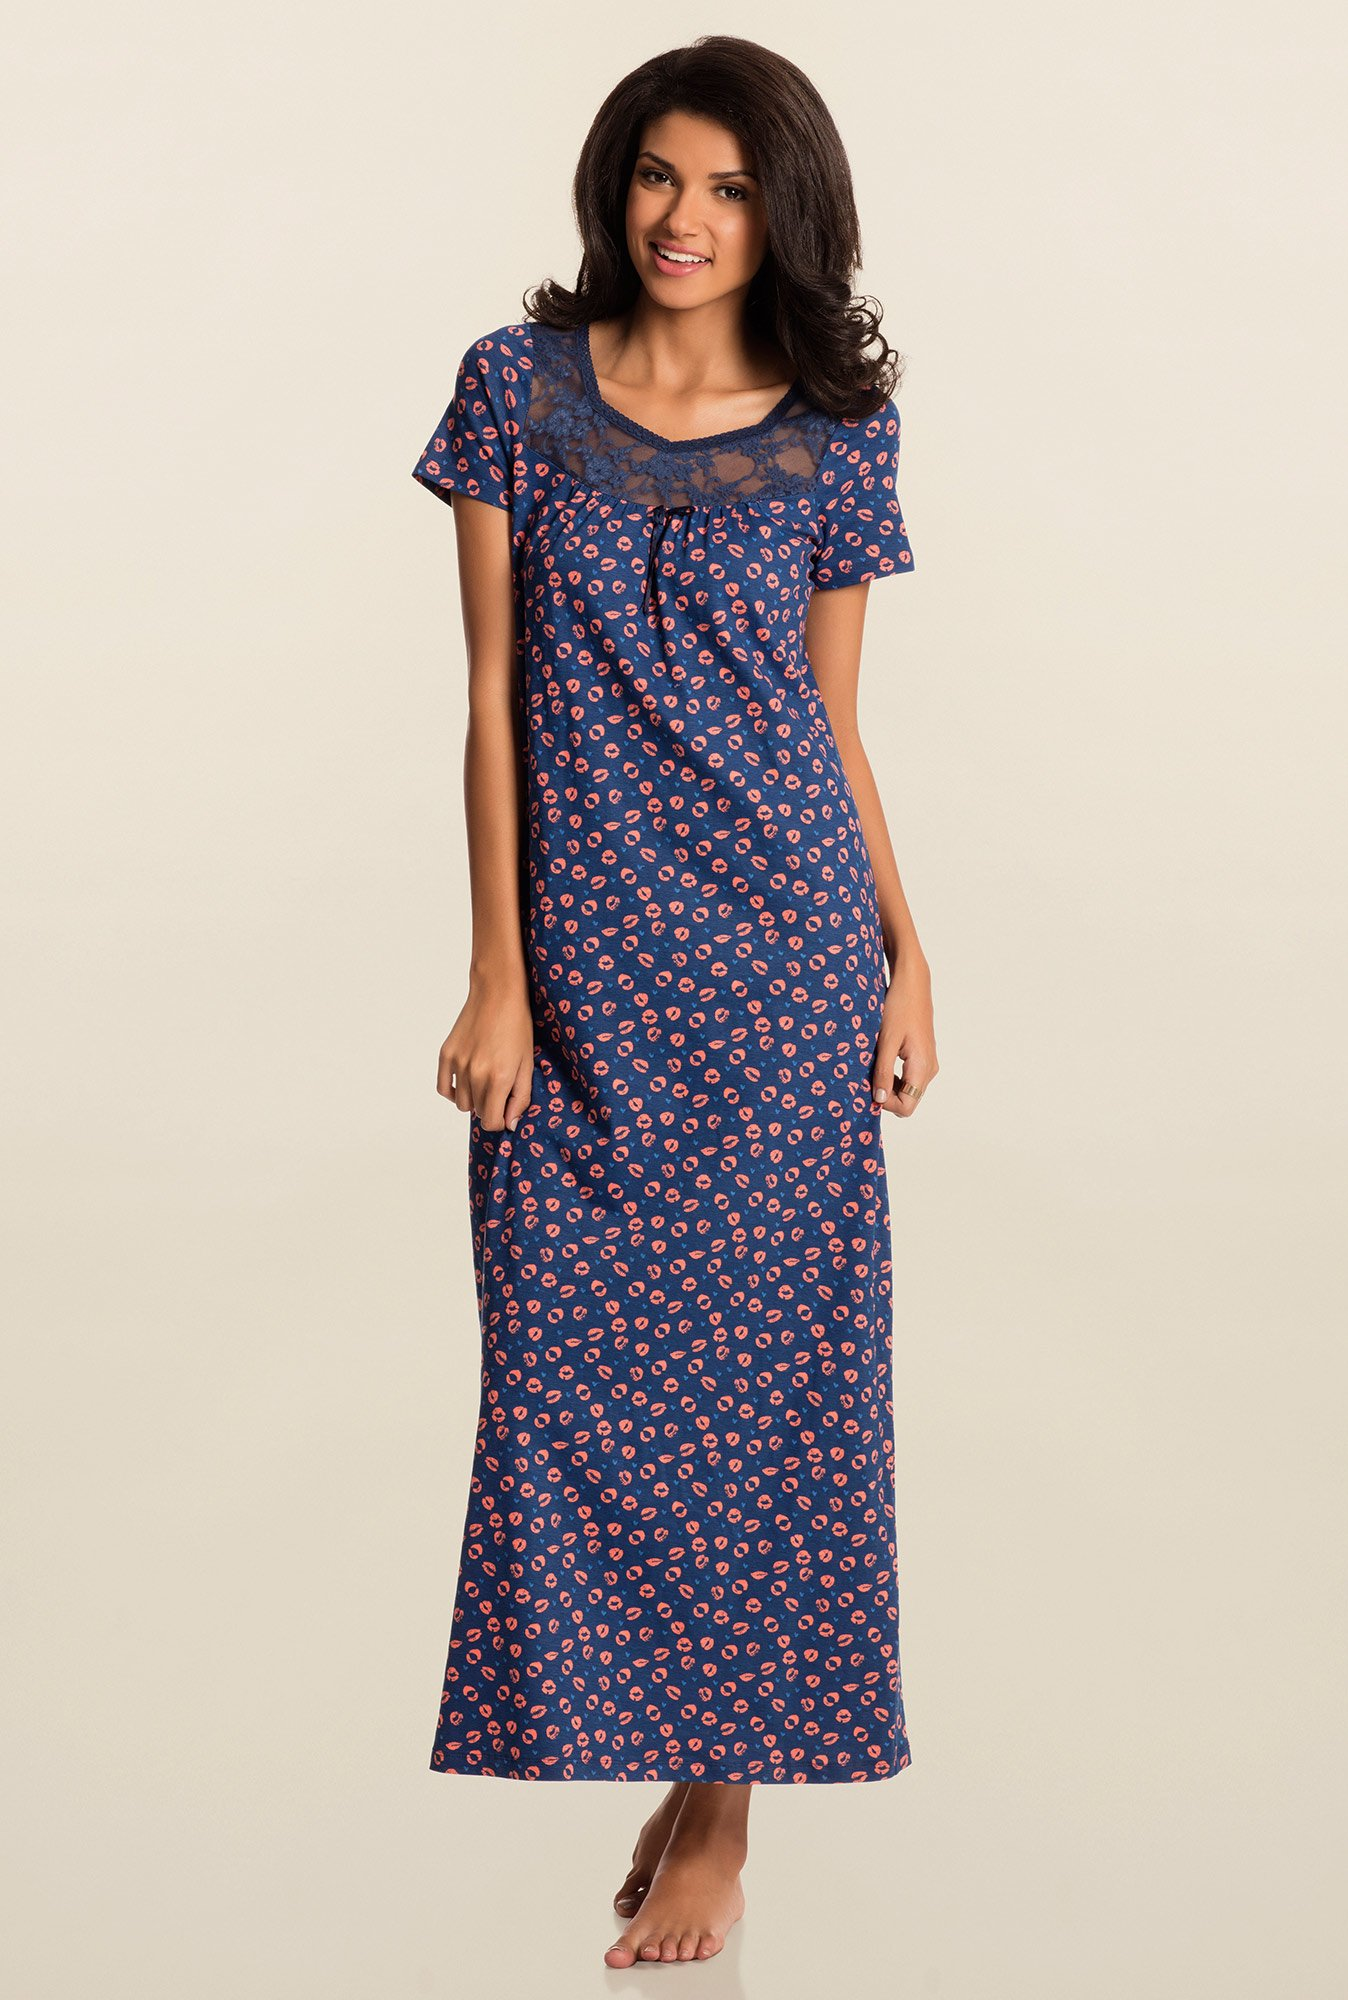 Pretty Secrets Navy Printed Night Dress